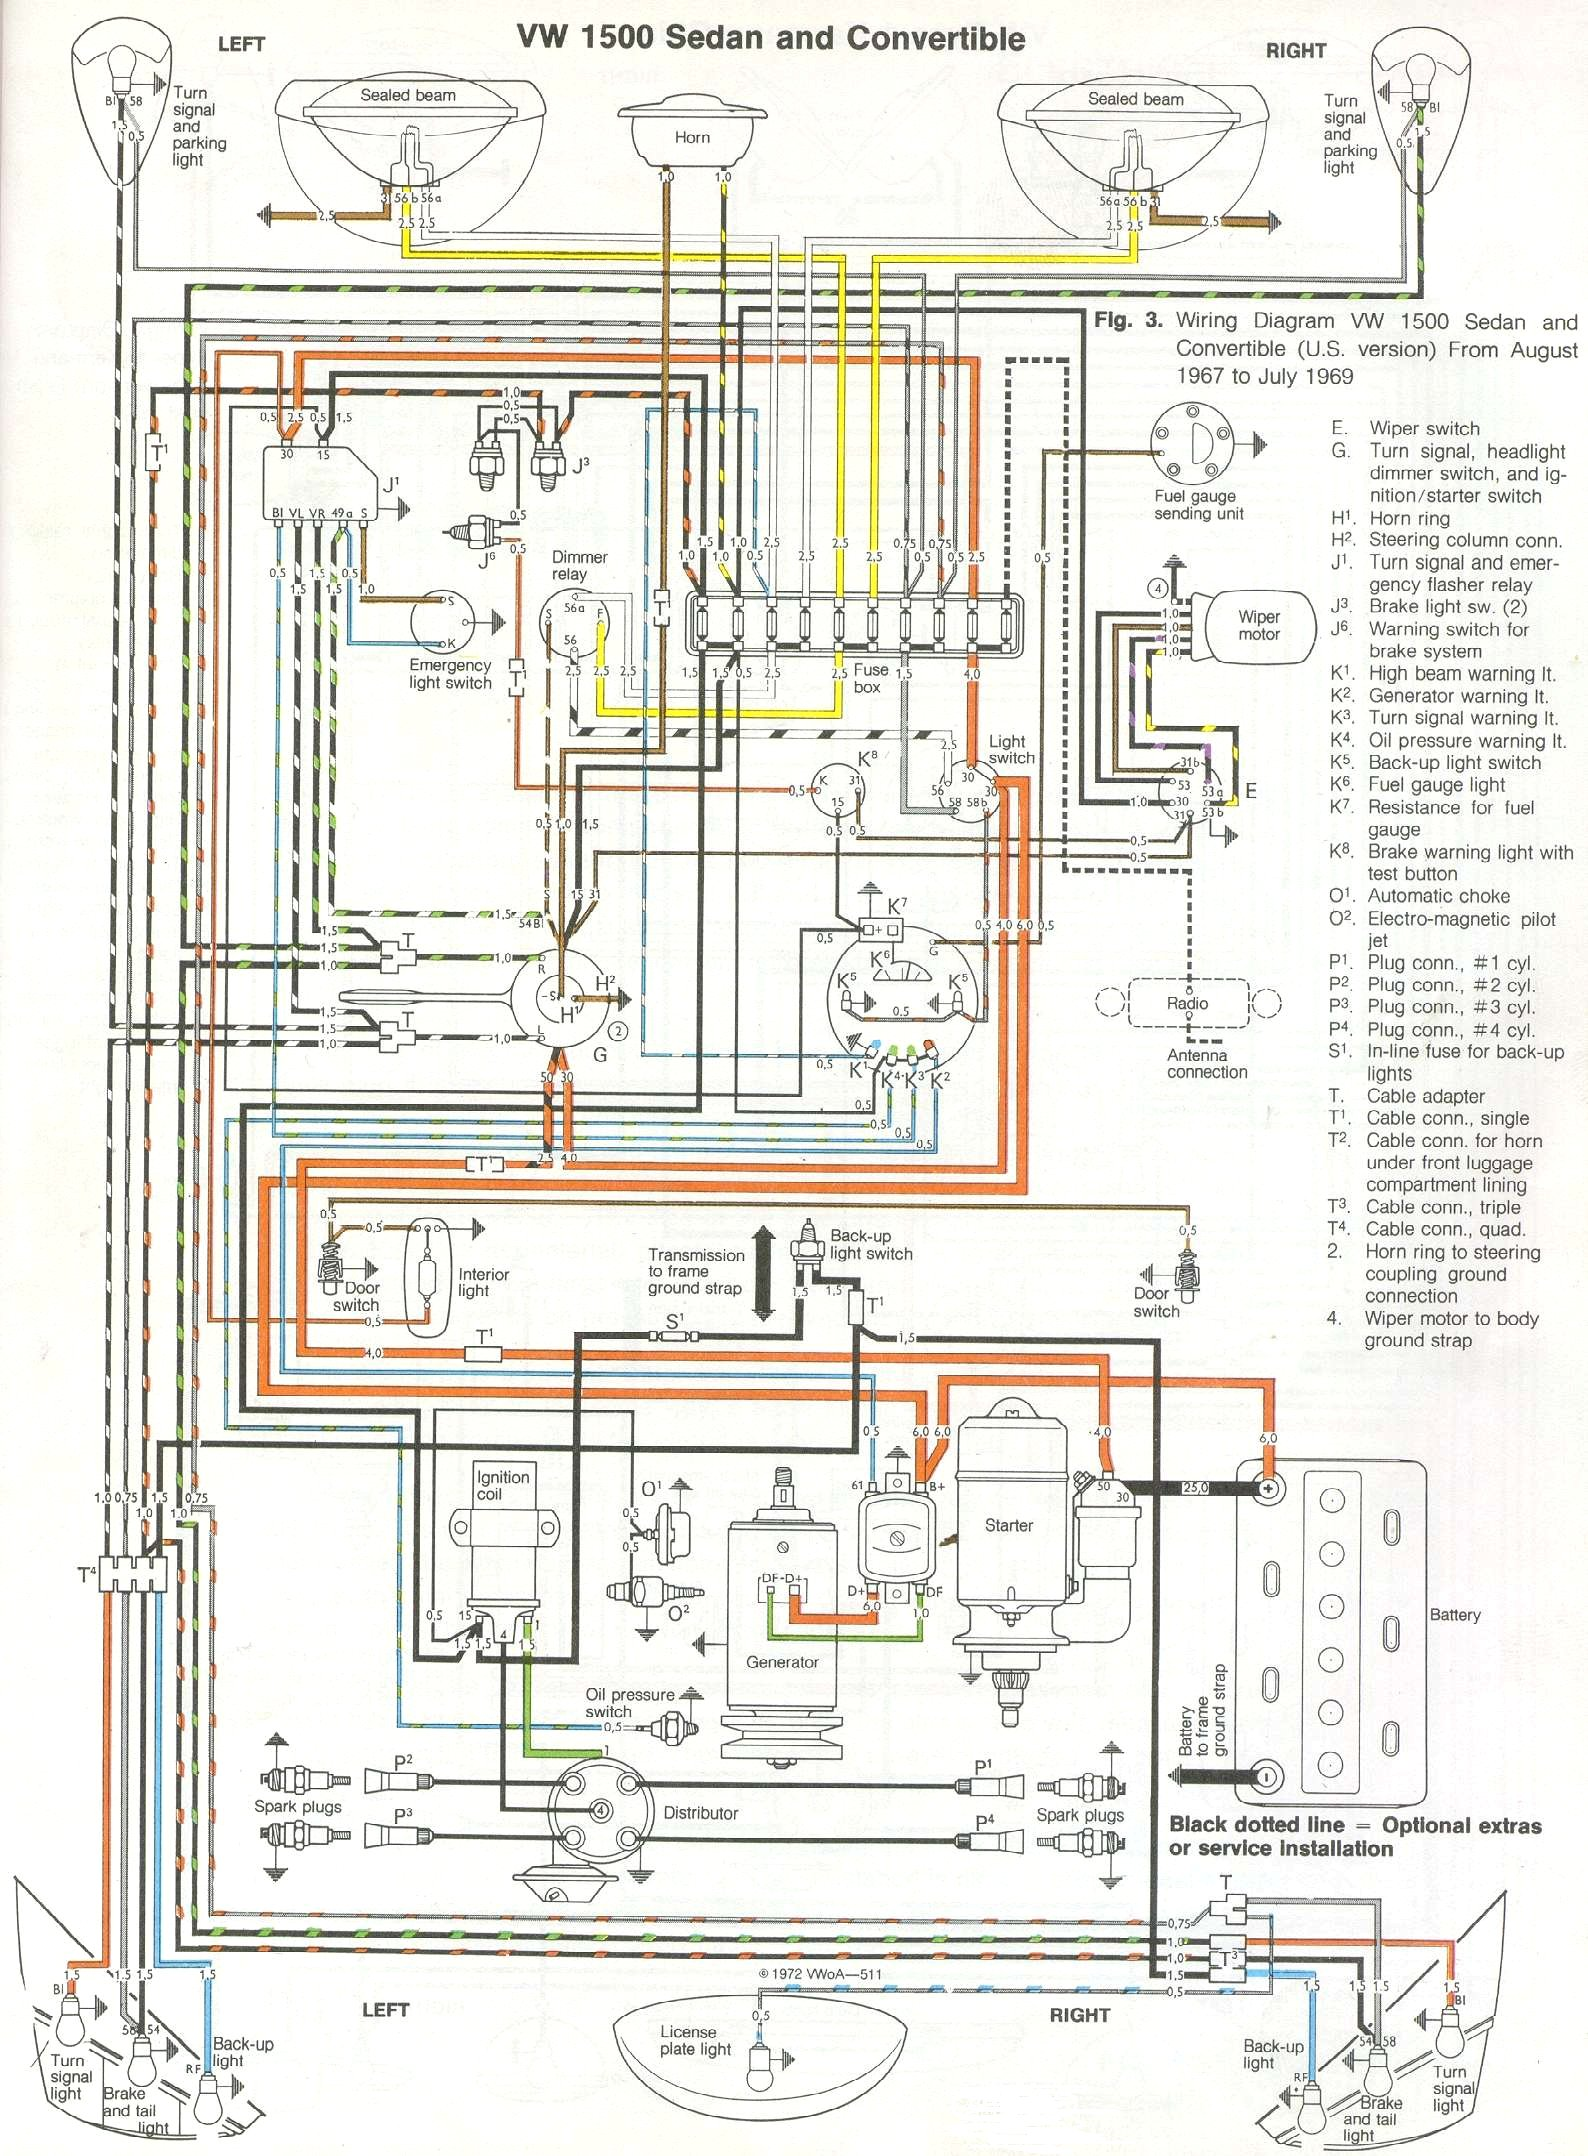 Vw Wiring Diagrams Reveolution Of Diagram Gibson L6s 1969 71 Beetle Thegoldenbug Com Rh 2003 Jetta Air